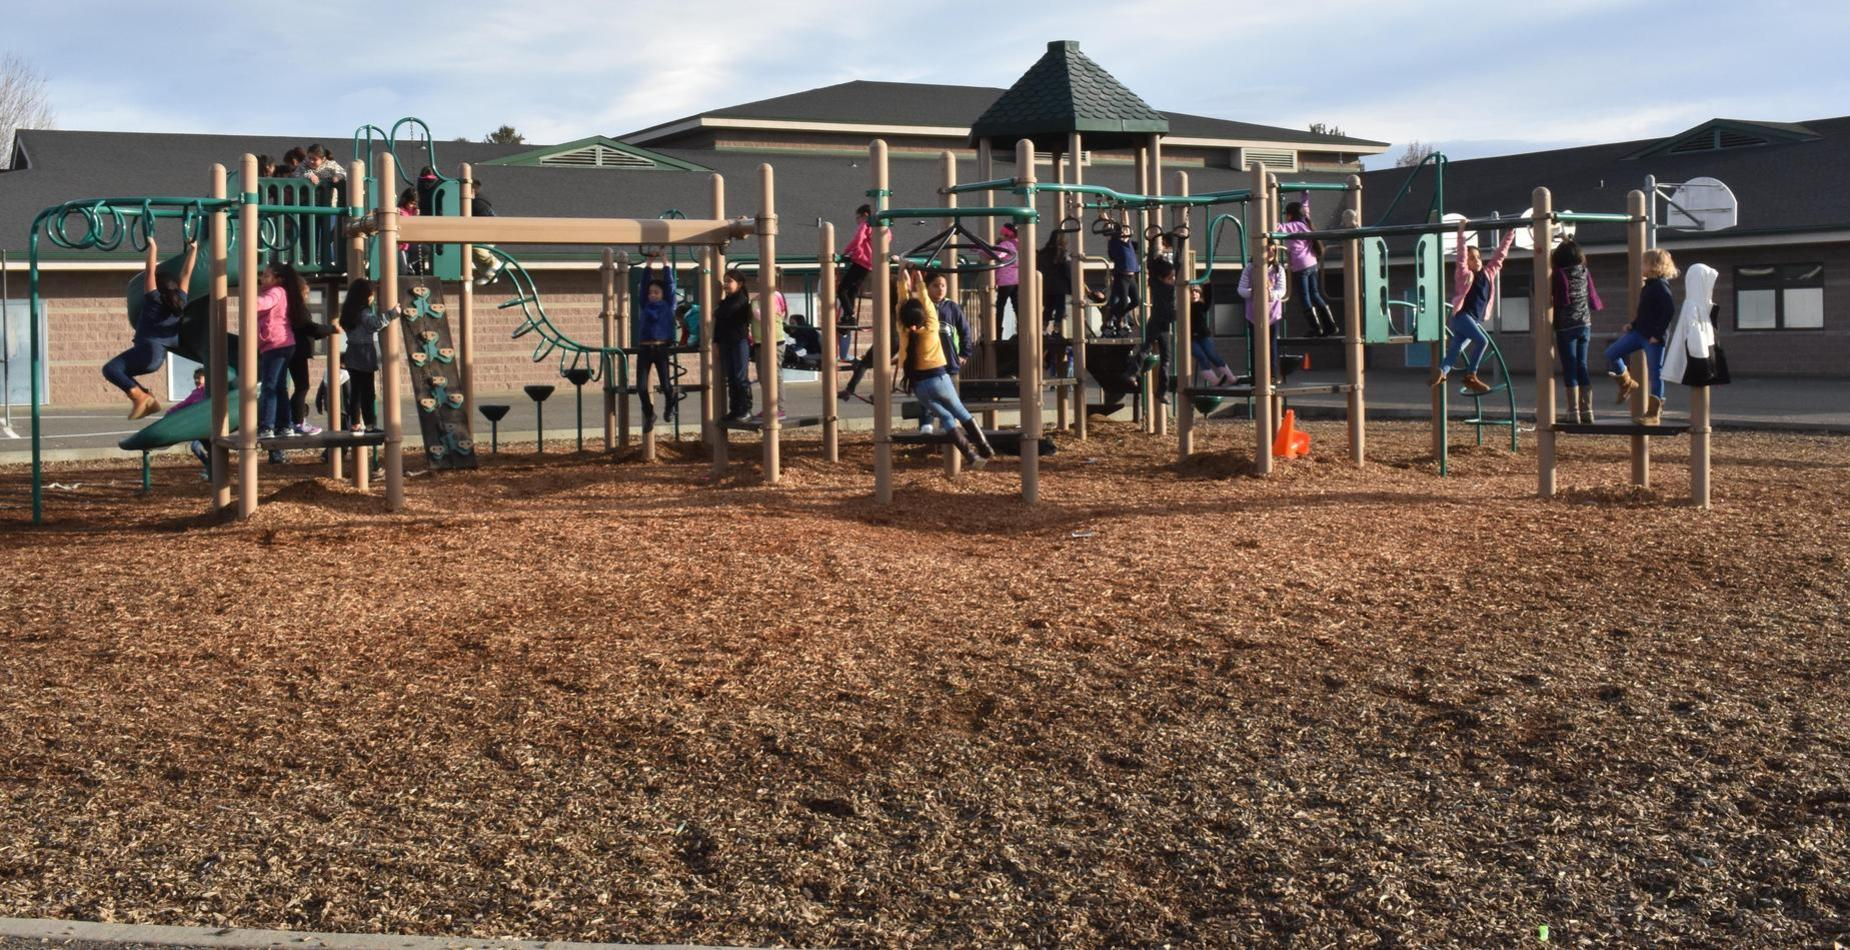 Students playing on playground equipment